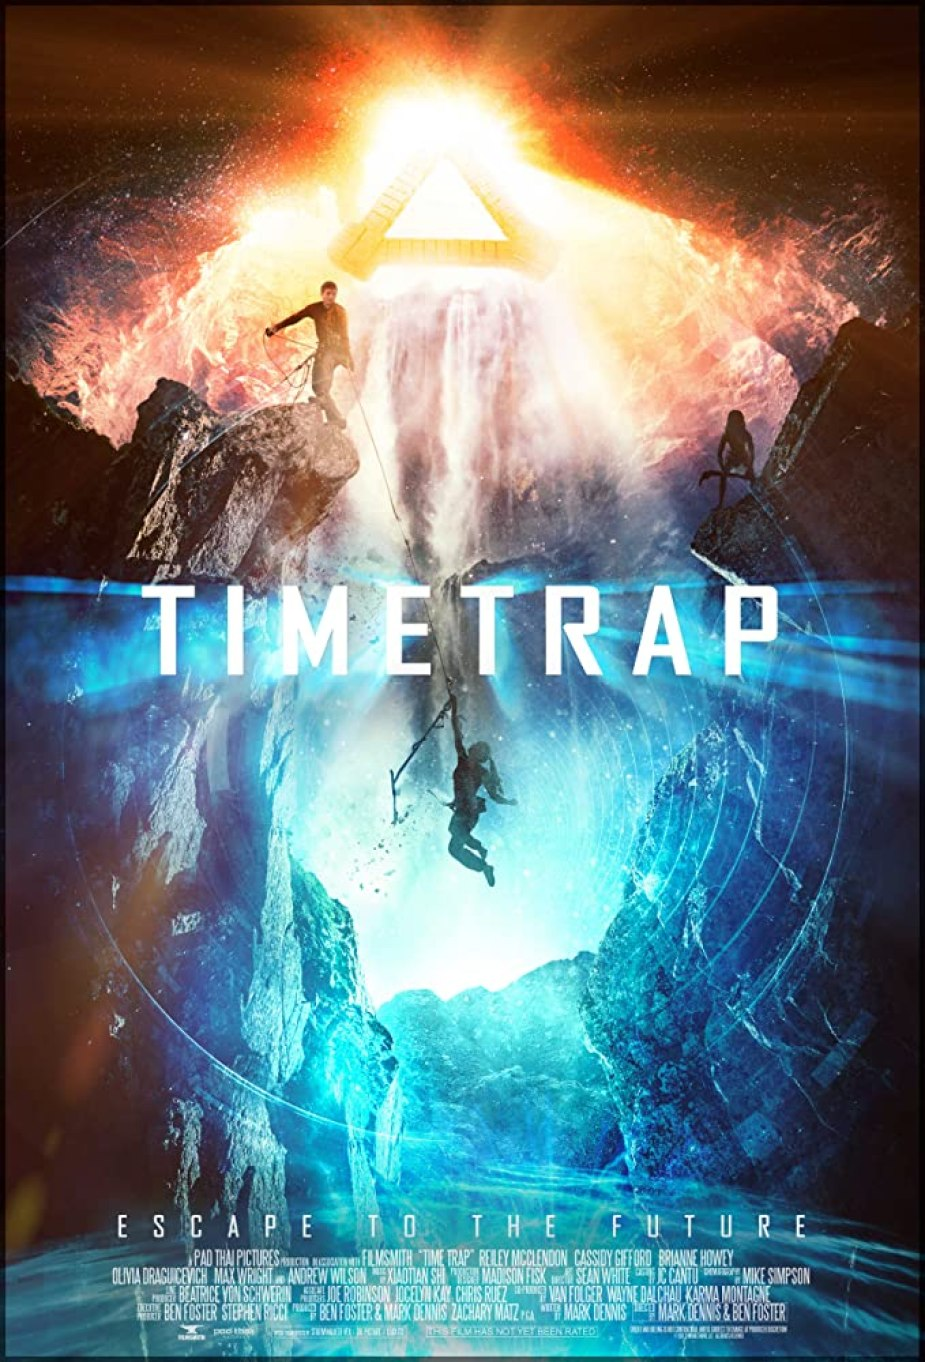 Reiley McClendon, Andrew Wilson, Cassidy Gifford, Olivia Draguicevich, Max Wright, Ben Foster, Mark Dennis, and Brianne Howey in Time Trap (2017)